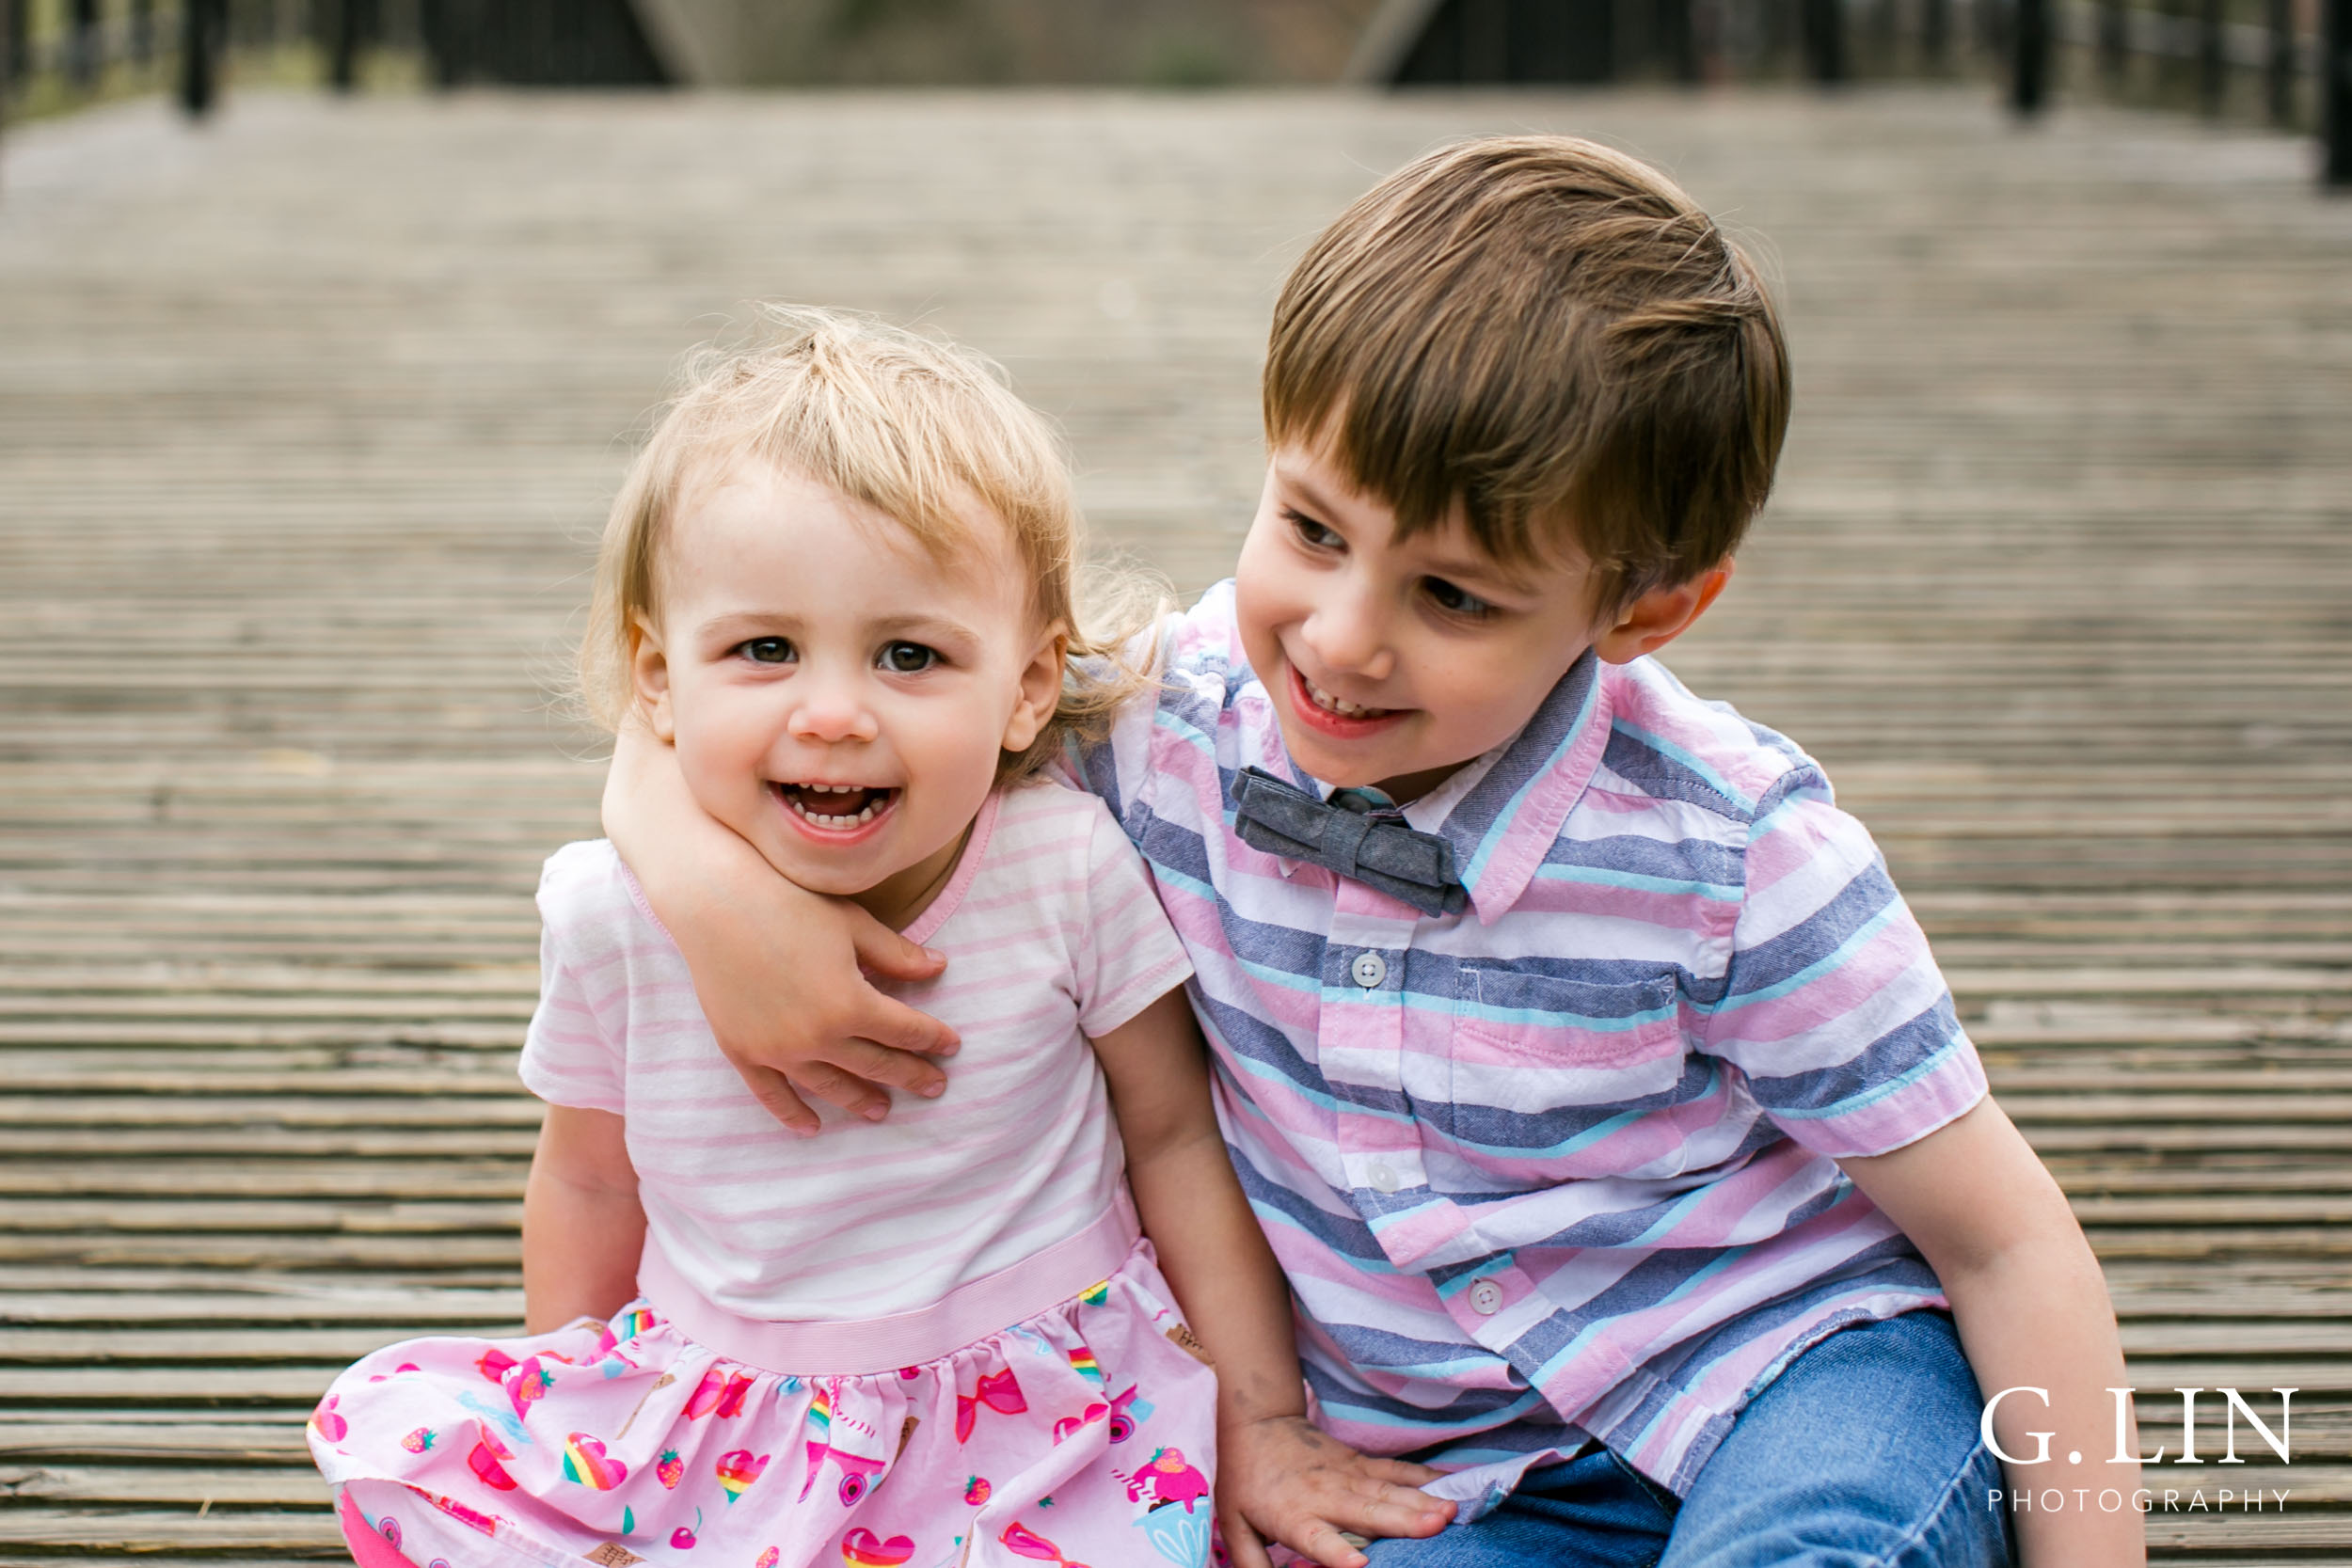 Raleigh Family Photographer | G. Lin Photography | Children sitting on ground smiling